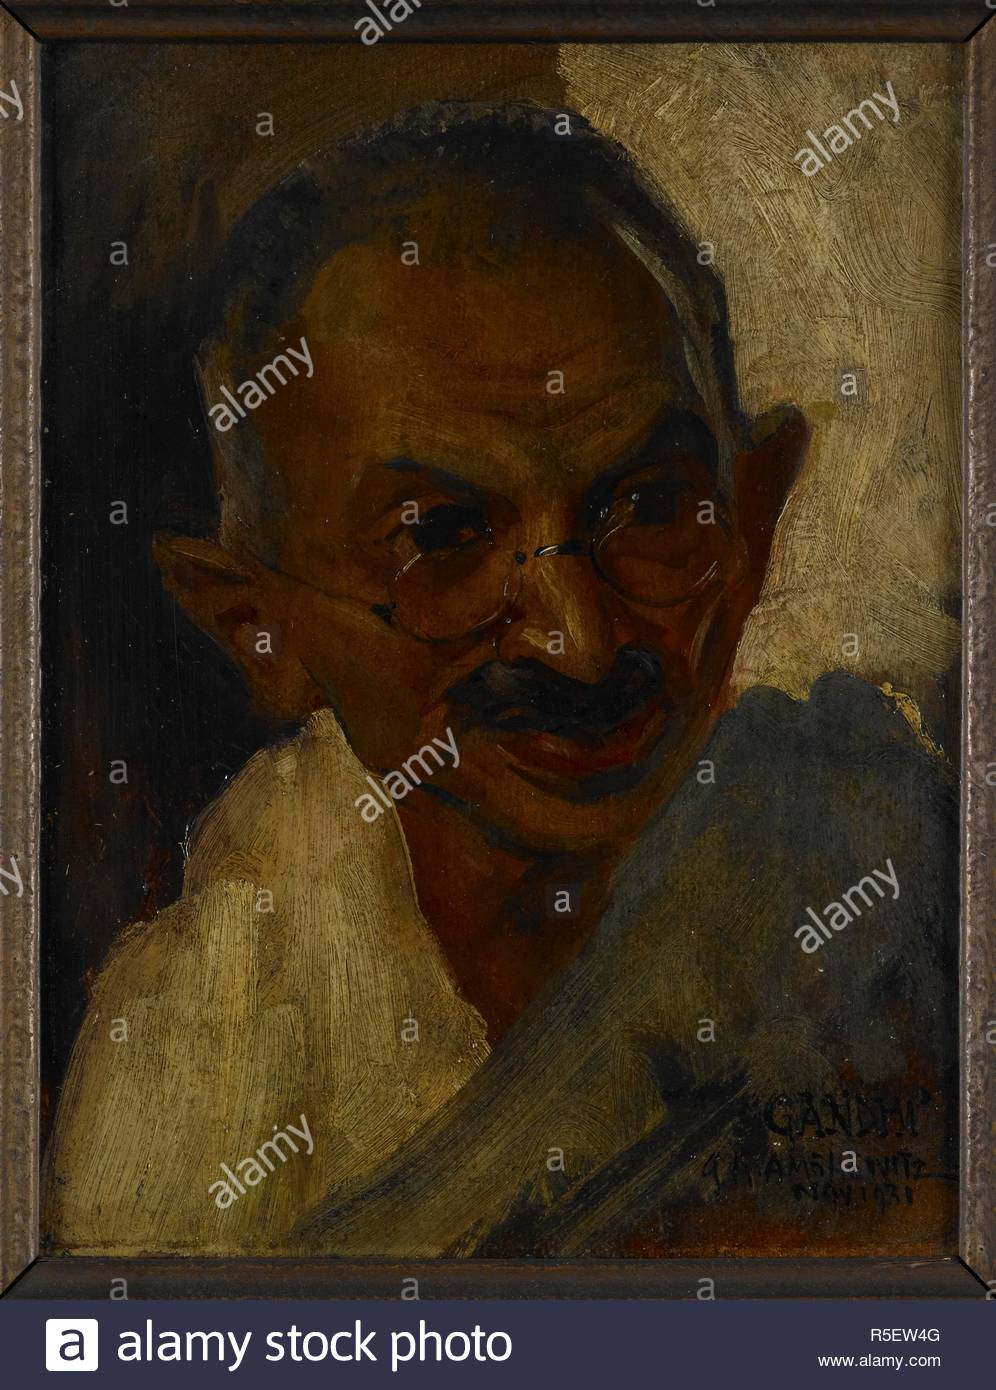 Mohandas Karamcand Gandhi (1869-1948), 1931 Head and shoulders portrait of Gandhi wearing spectacles and a shawl. This portrait study of the Indian political leader and social reformer was made during the course of Gandhi's visit to London in 1931 to act as the plenipotentiary representative of the Indian National Congress at the Second Round Table Conference. He made himself available for artists for one day in Novemember 1931. London, 1931. Oil painting. Source: Foster 839. Author: Amschewitz, John Henry. - Stock Image